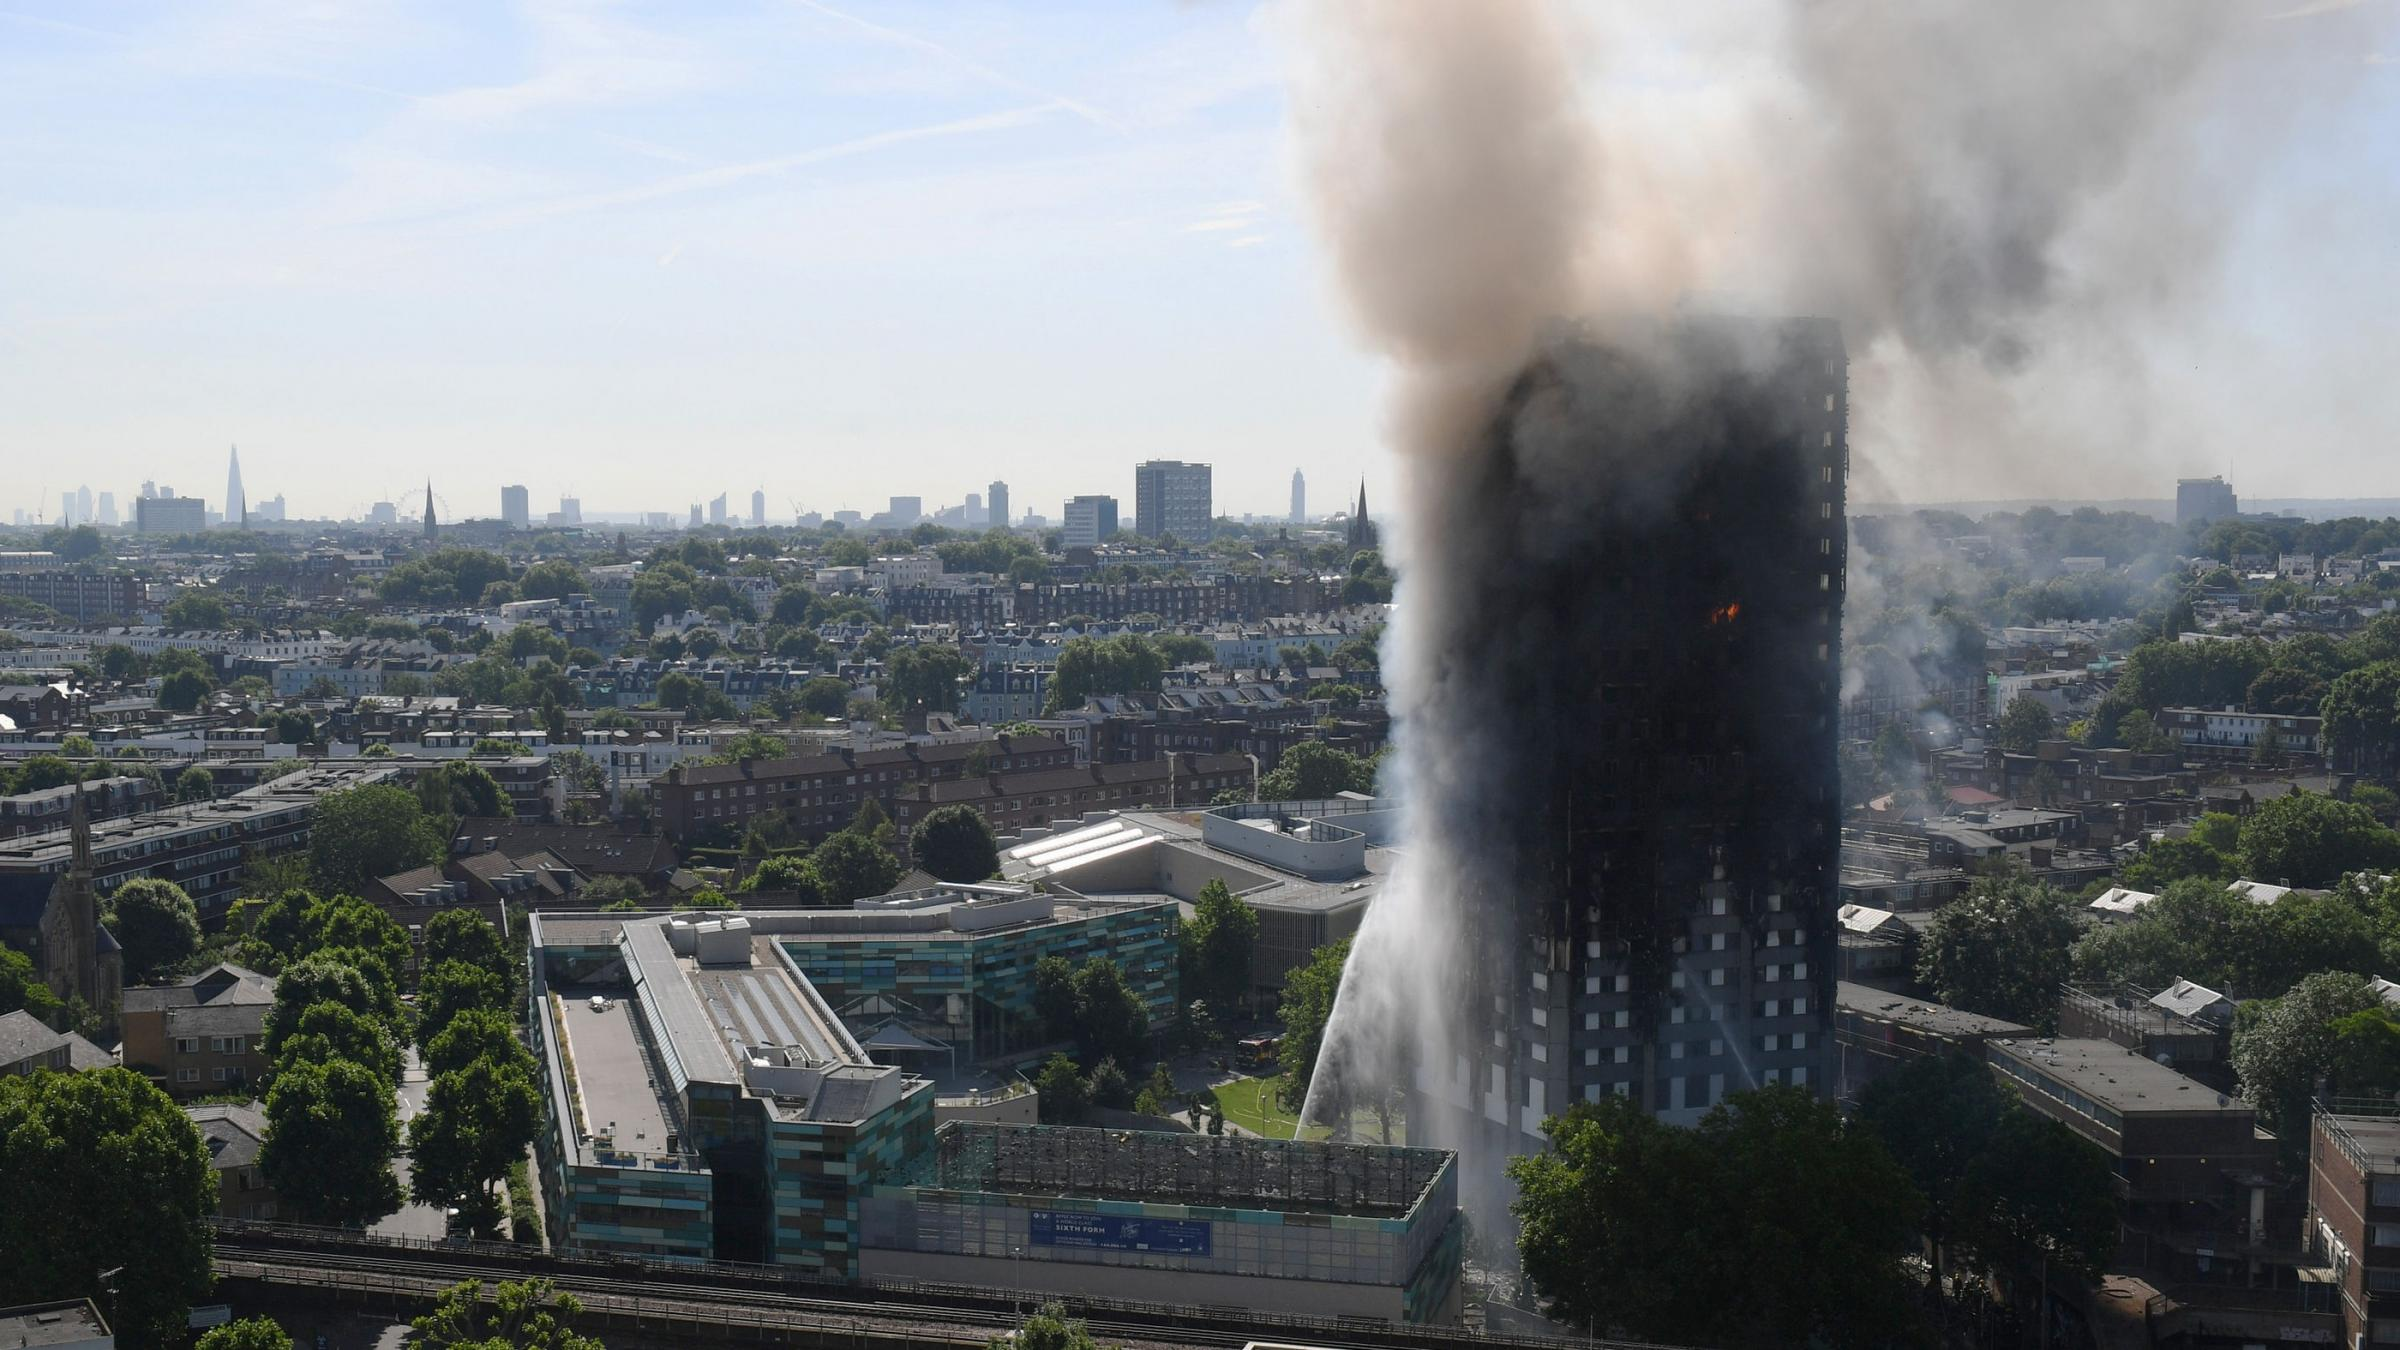 Death toll in London inferno rises to 30